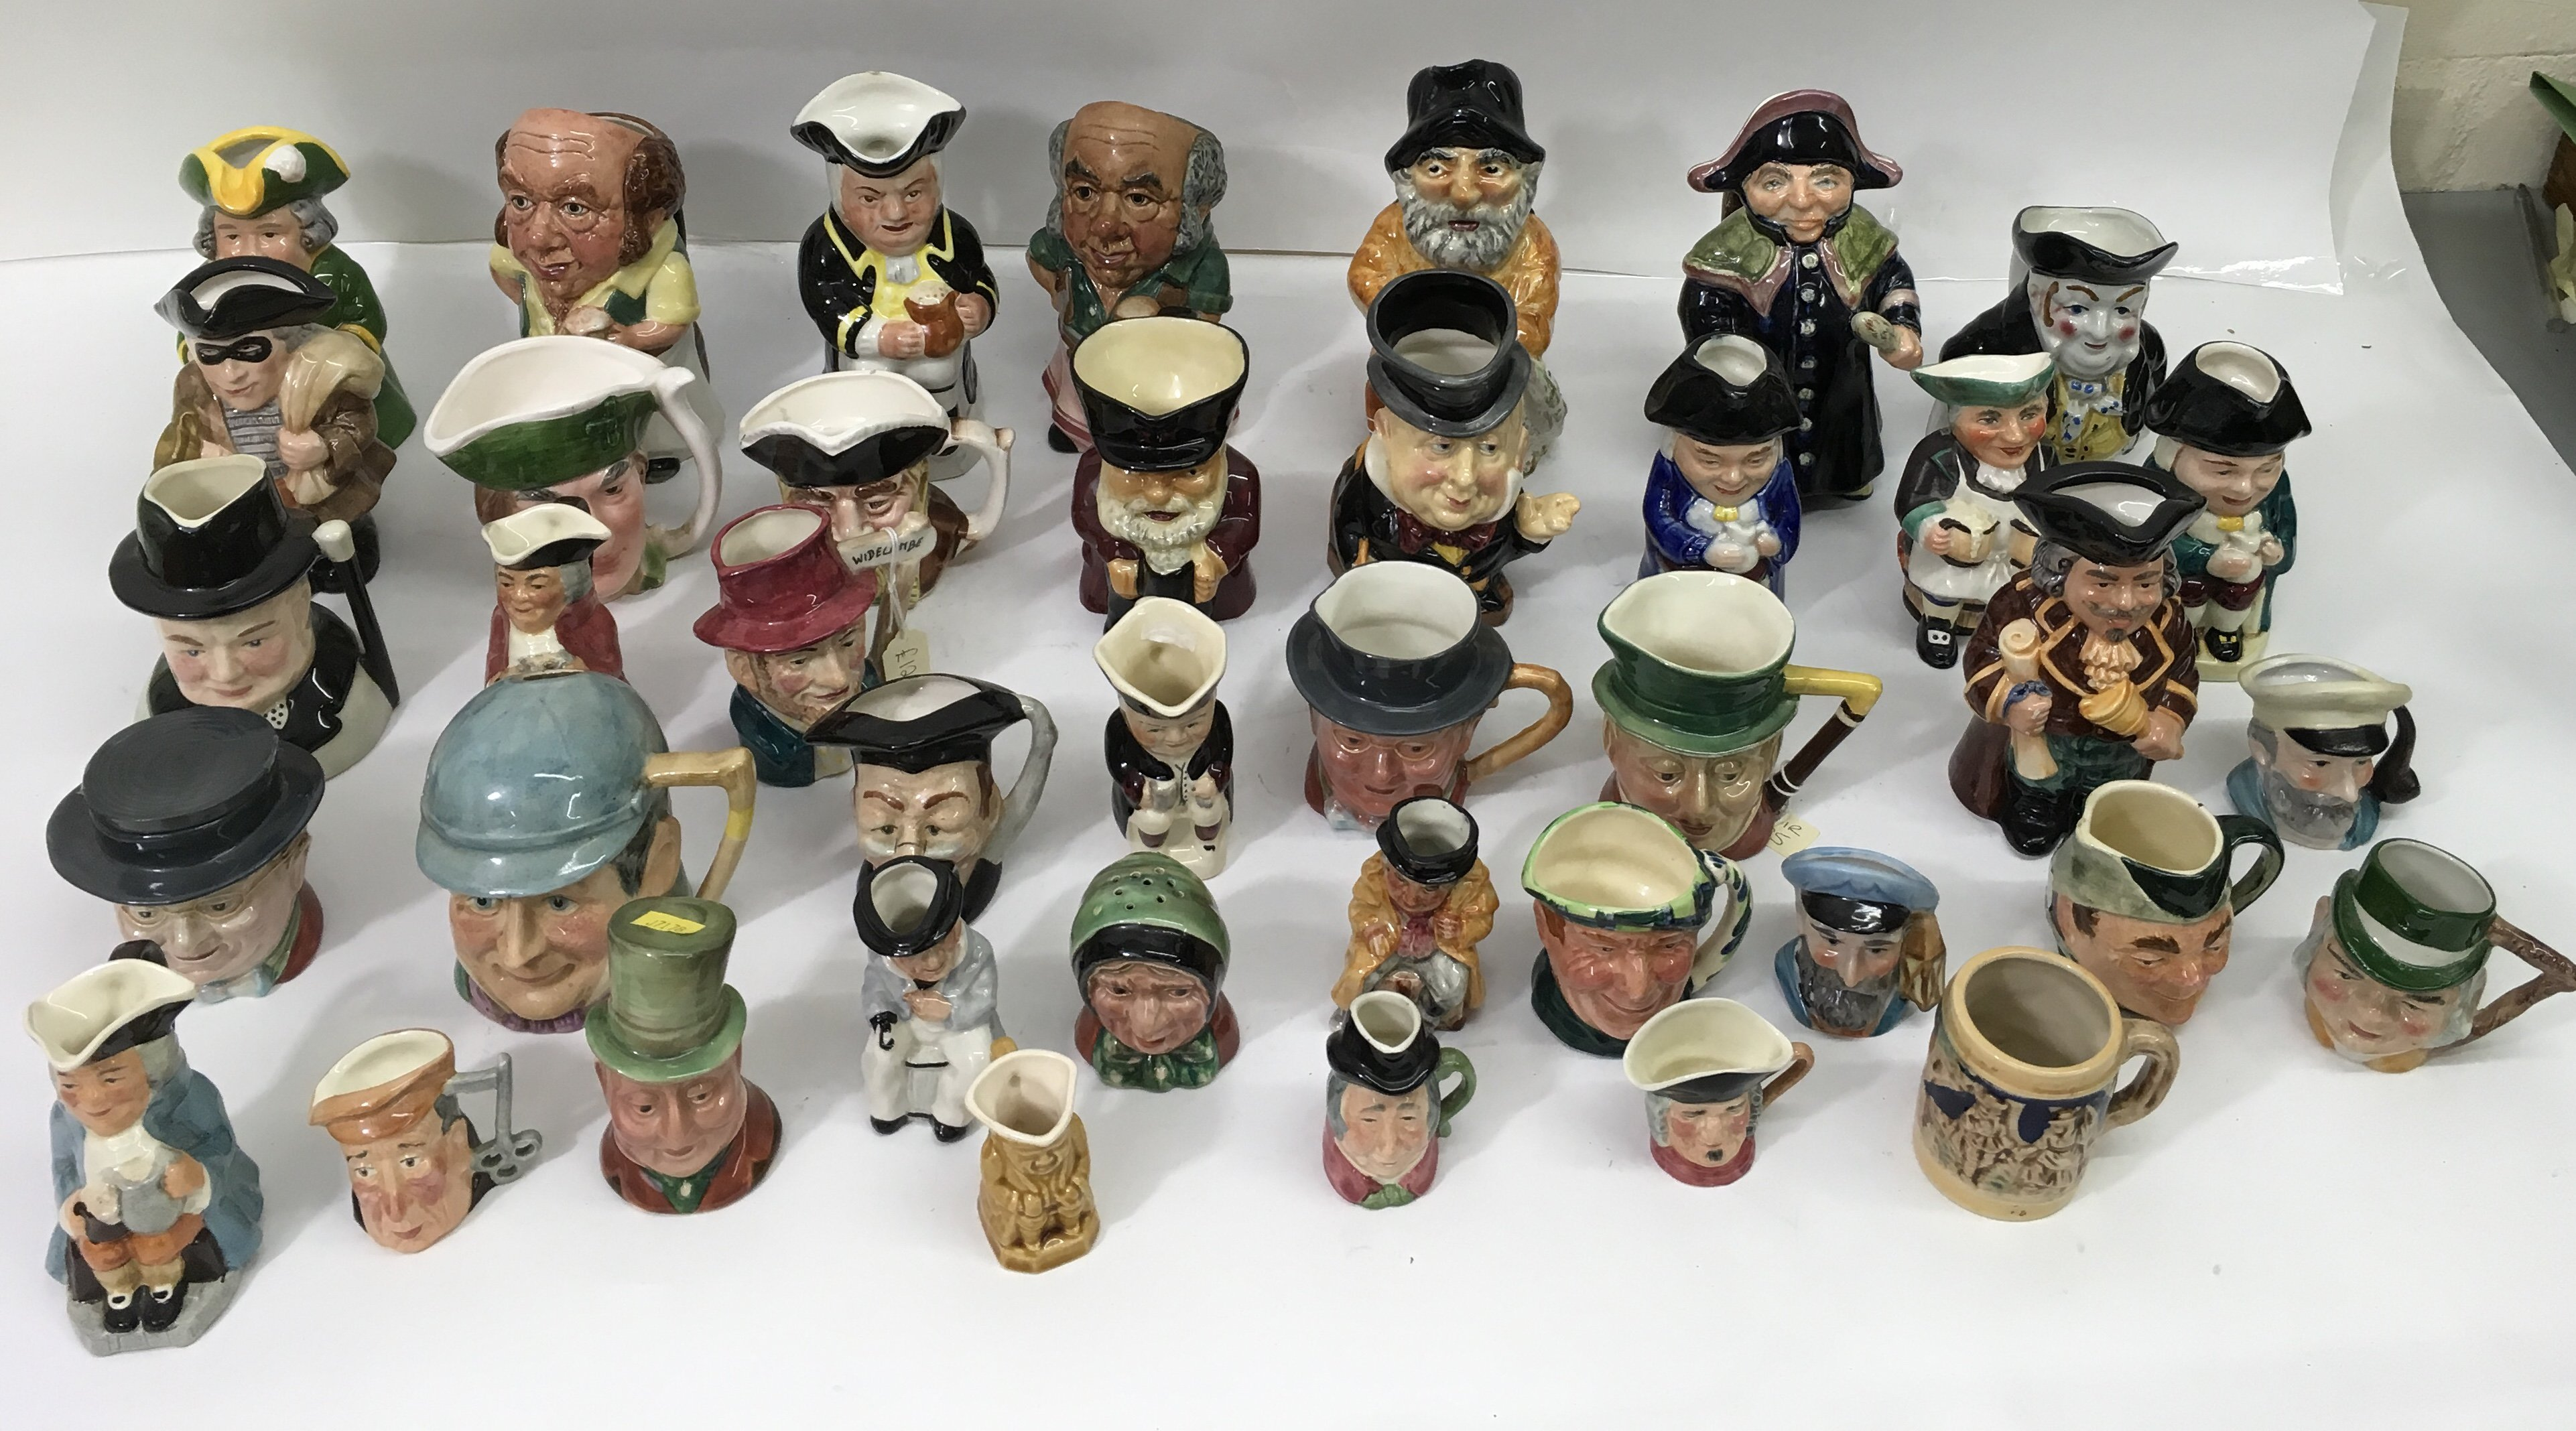 Lot 728 - A large collection of assorted Toby and character